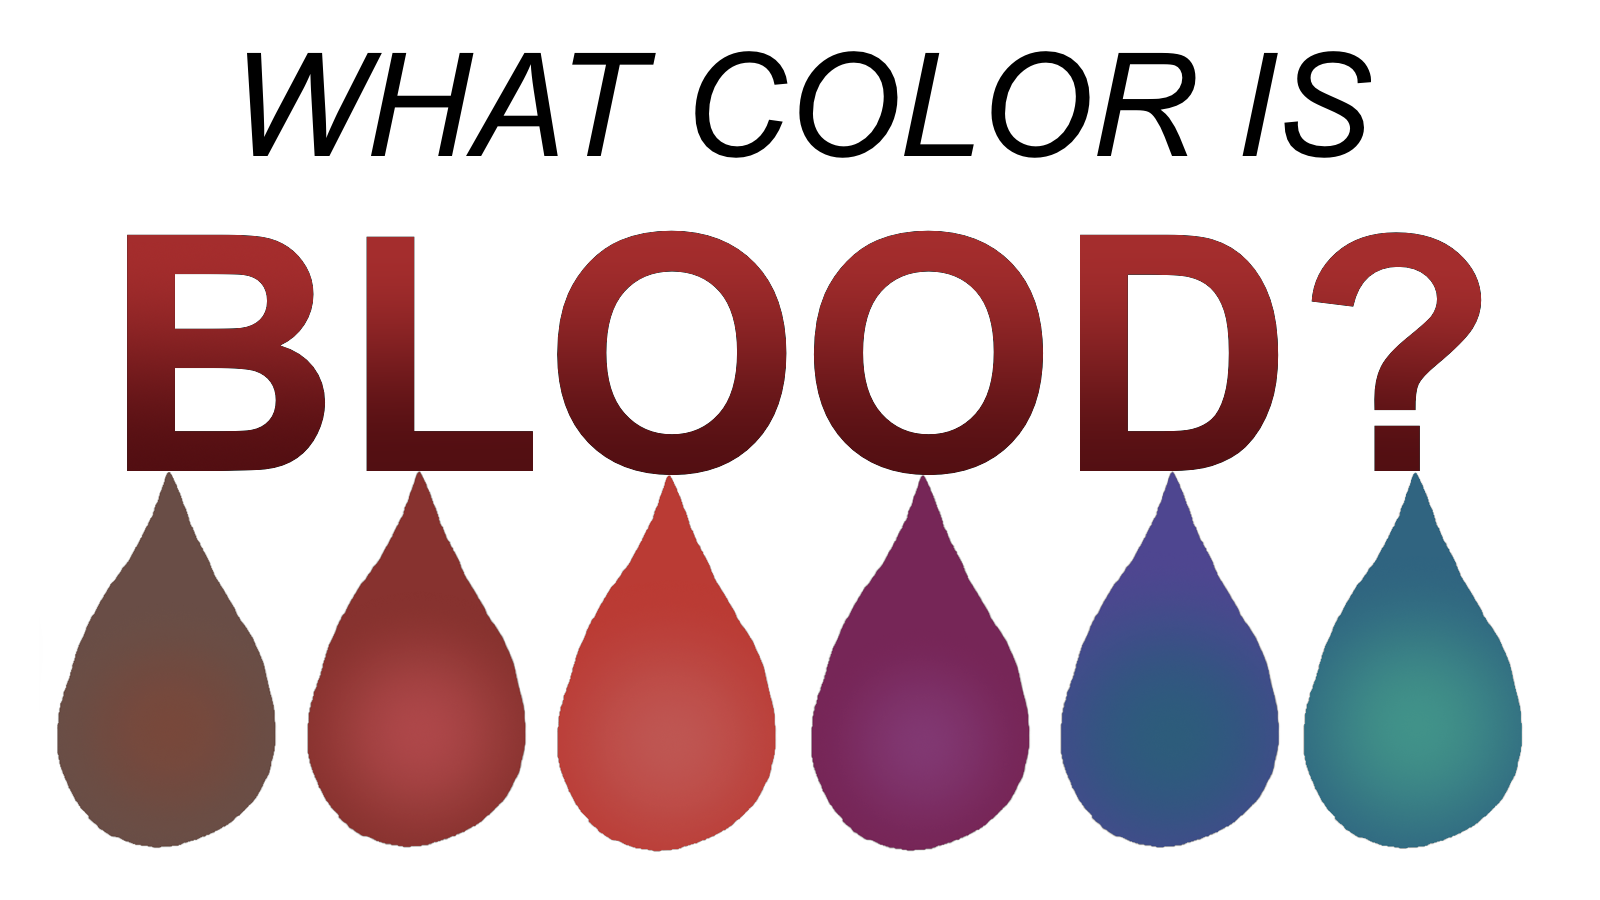 What color is blood REALLY?